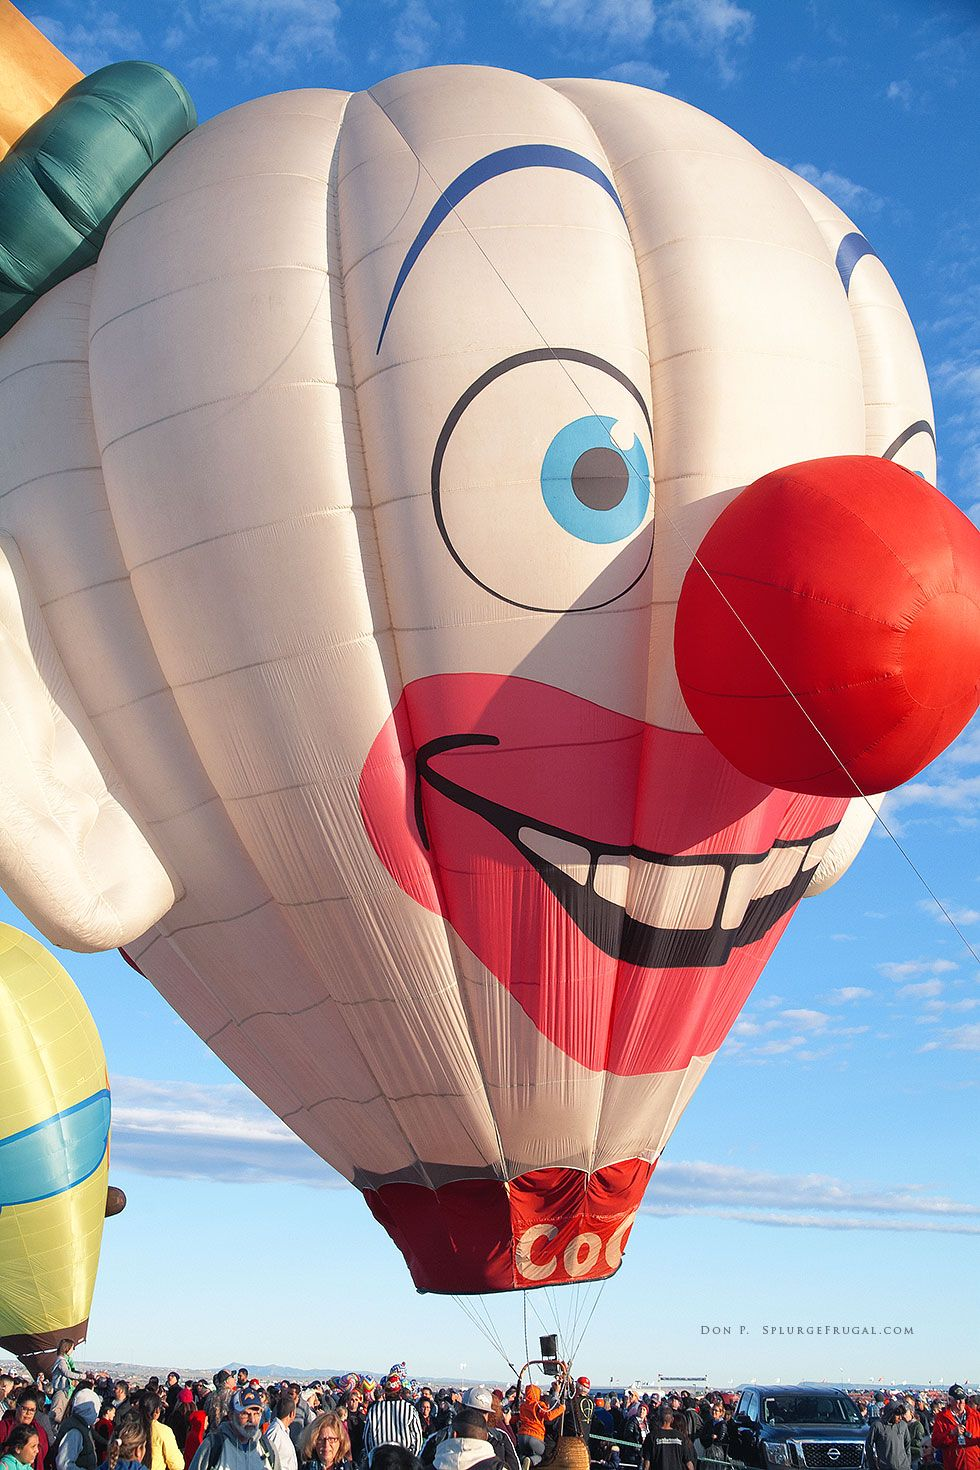 Albuquerque Balloon Fiesta Oct. 311, 2020 (With images